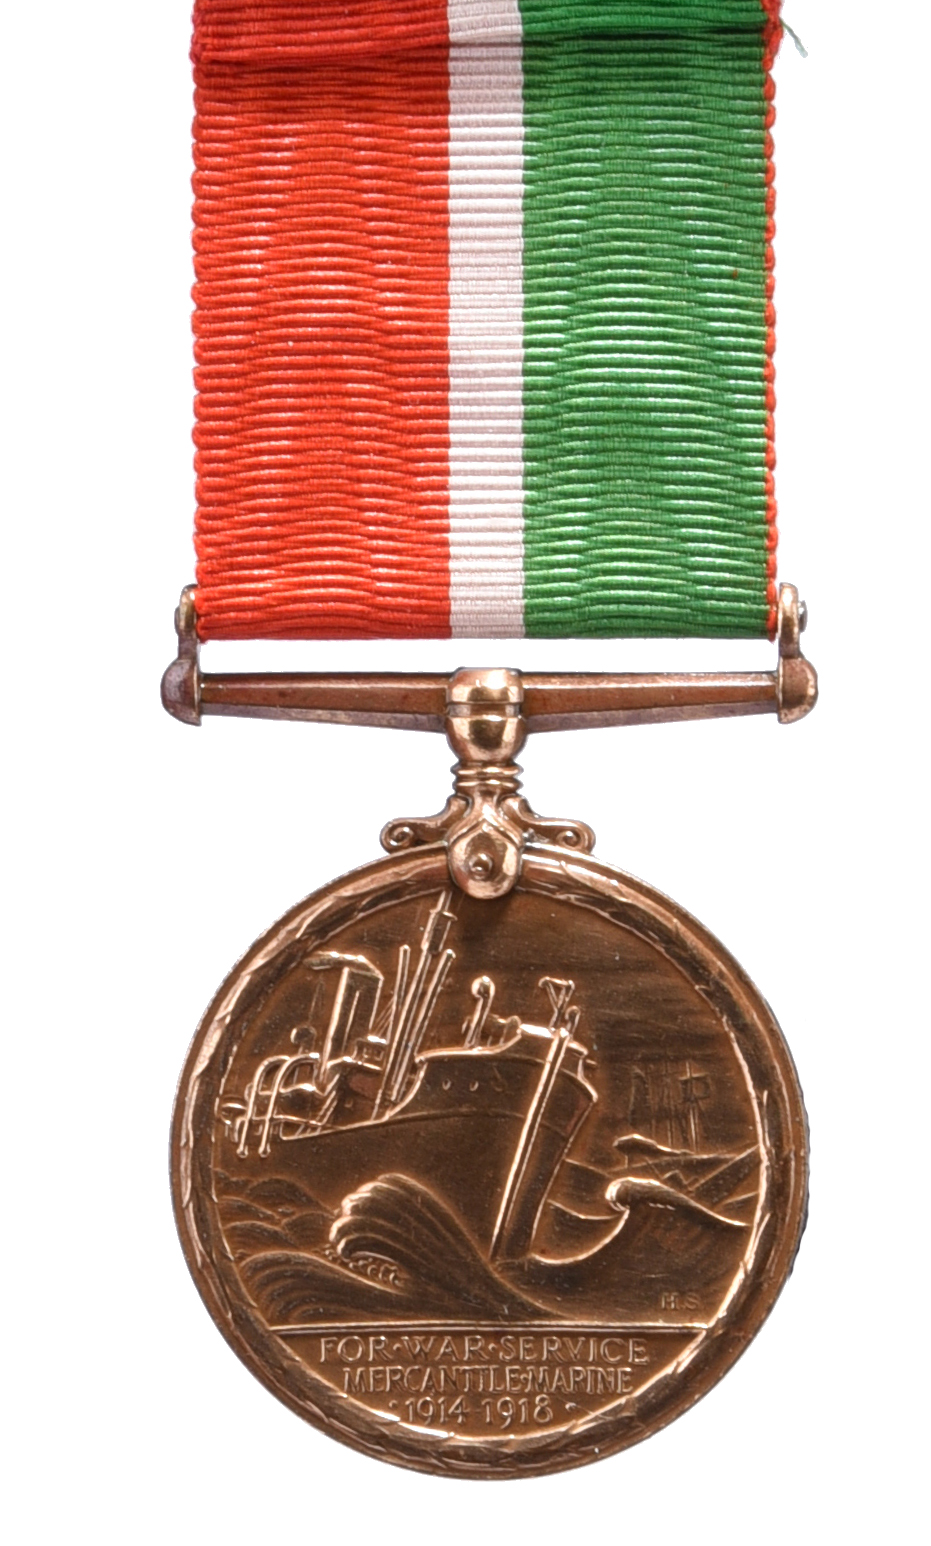 A Great War casualty Mercantile Marine War Medal to Frank Axel Rodman, S S Mordenwood (Frank A. - Image 3 of 3